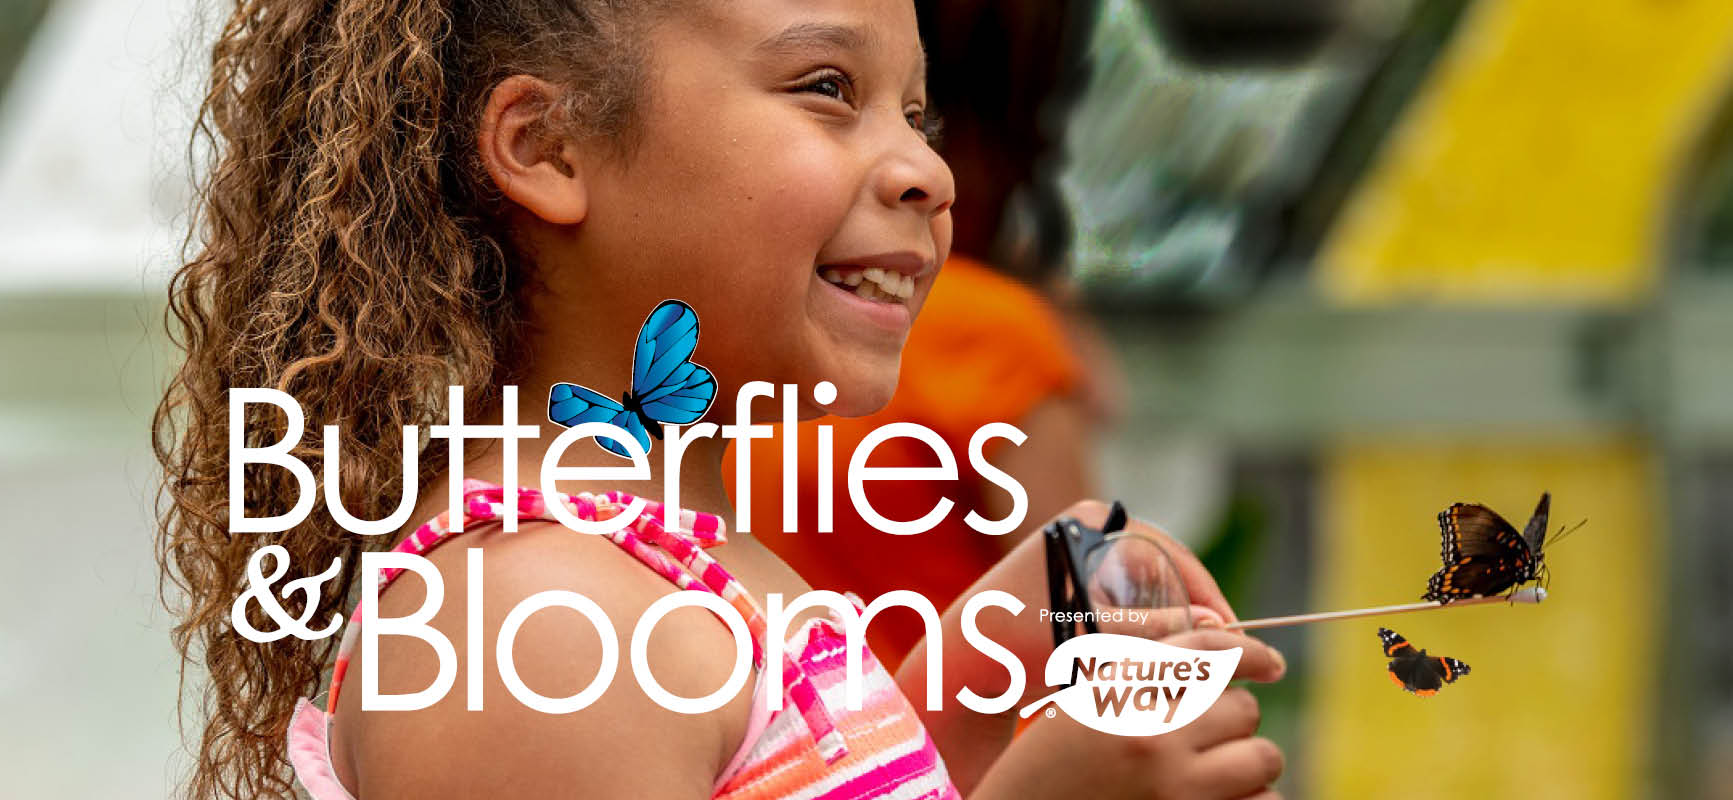 Butterflies & Blooms sponsored by Nature's Way